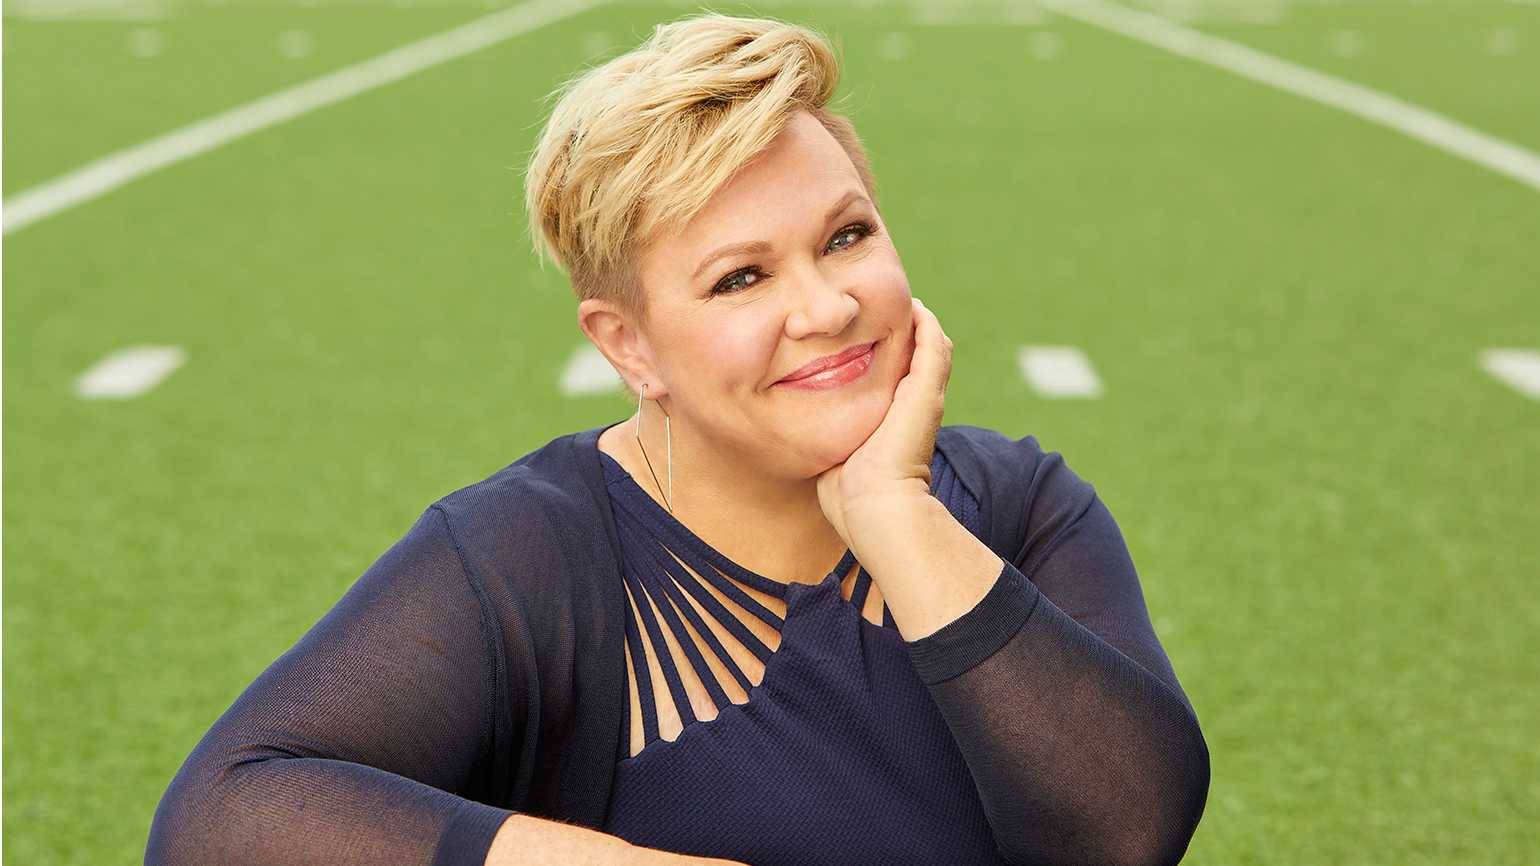 ESPN broadcaster Holly Rowe